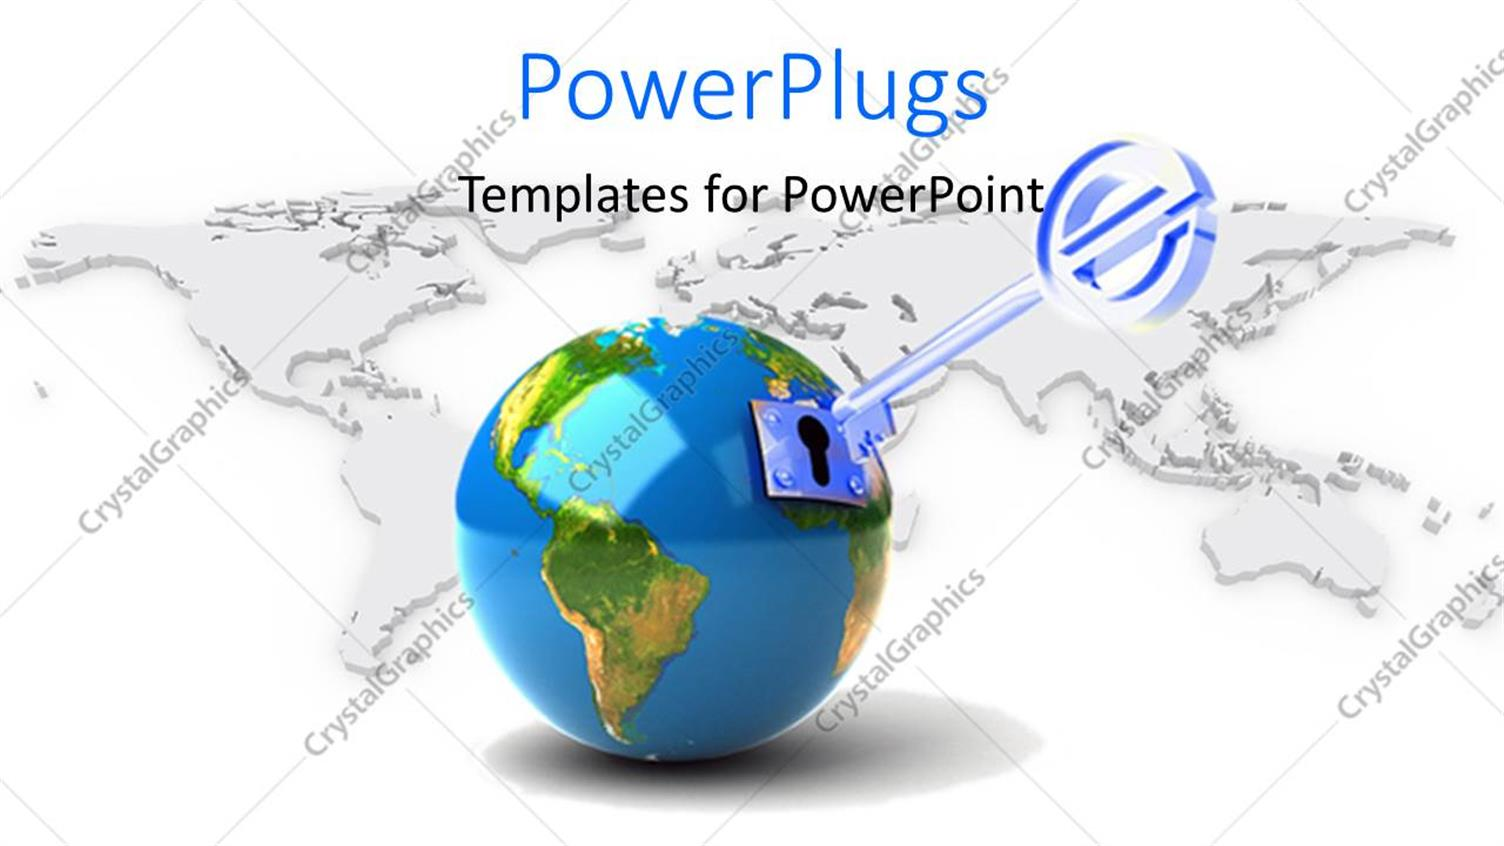 PowerPoint Template Displaying a Globe with a Key and Map in the Background